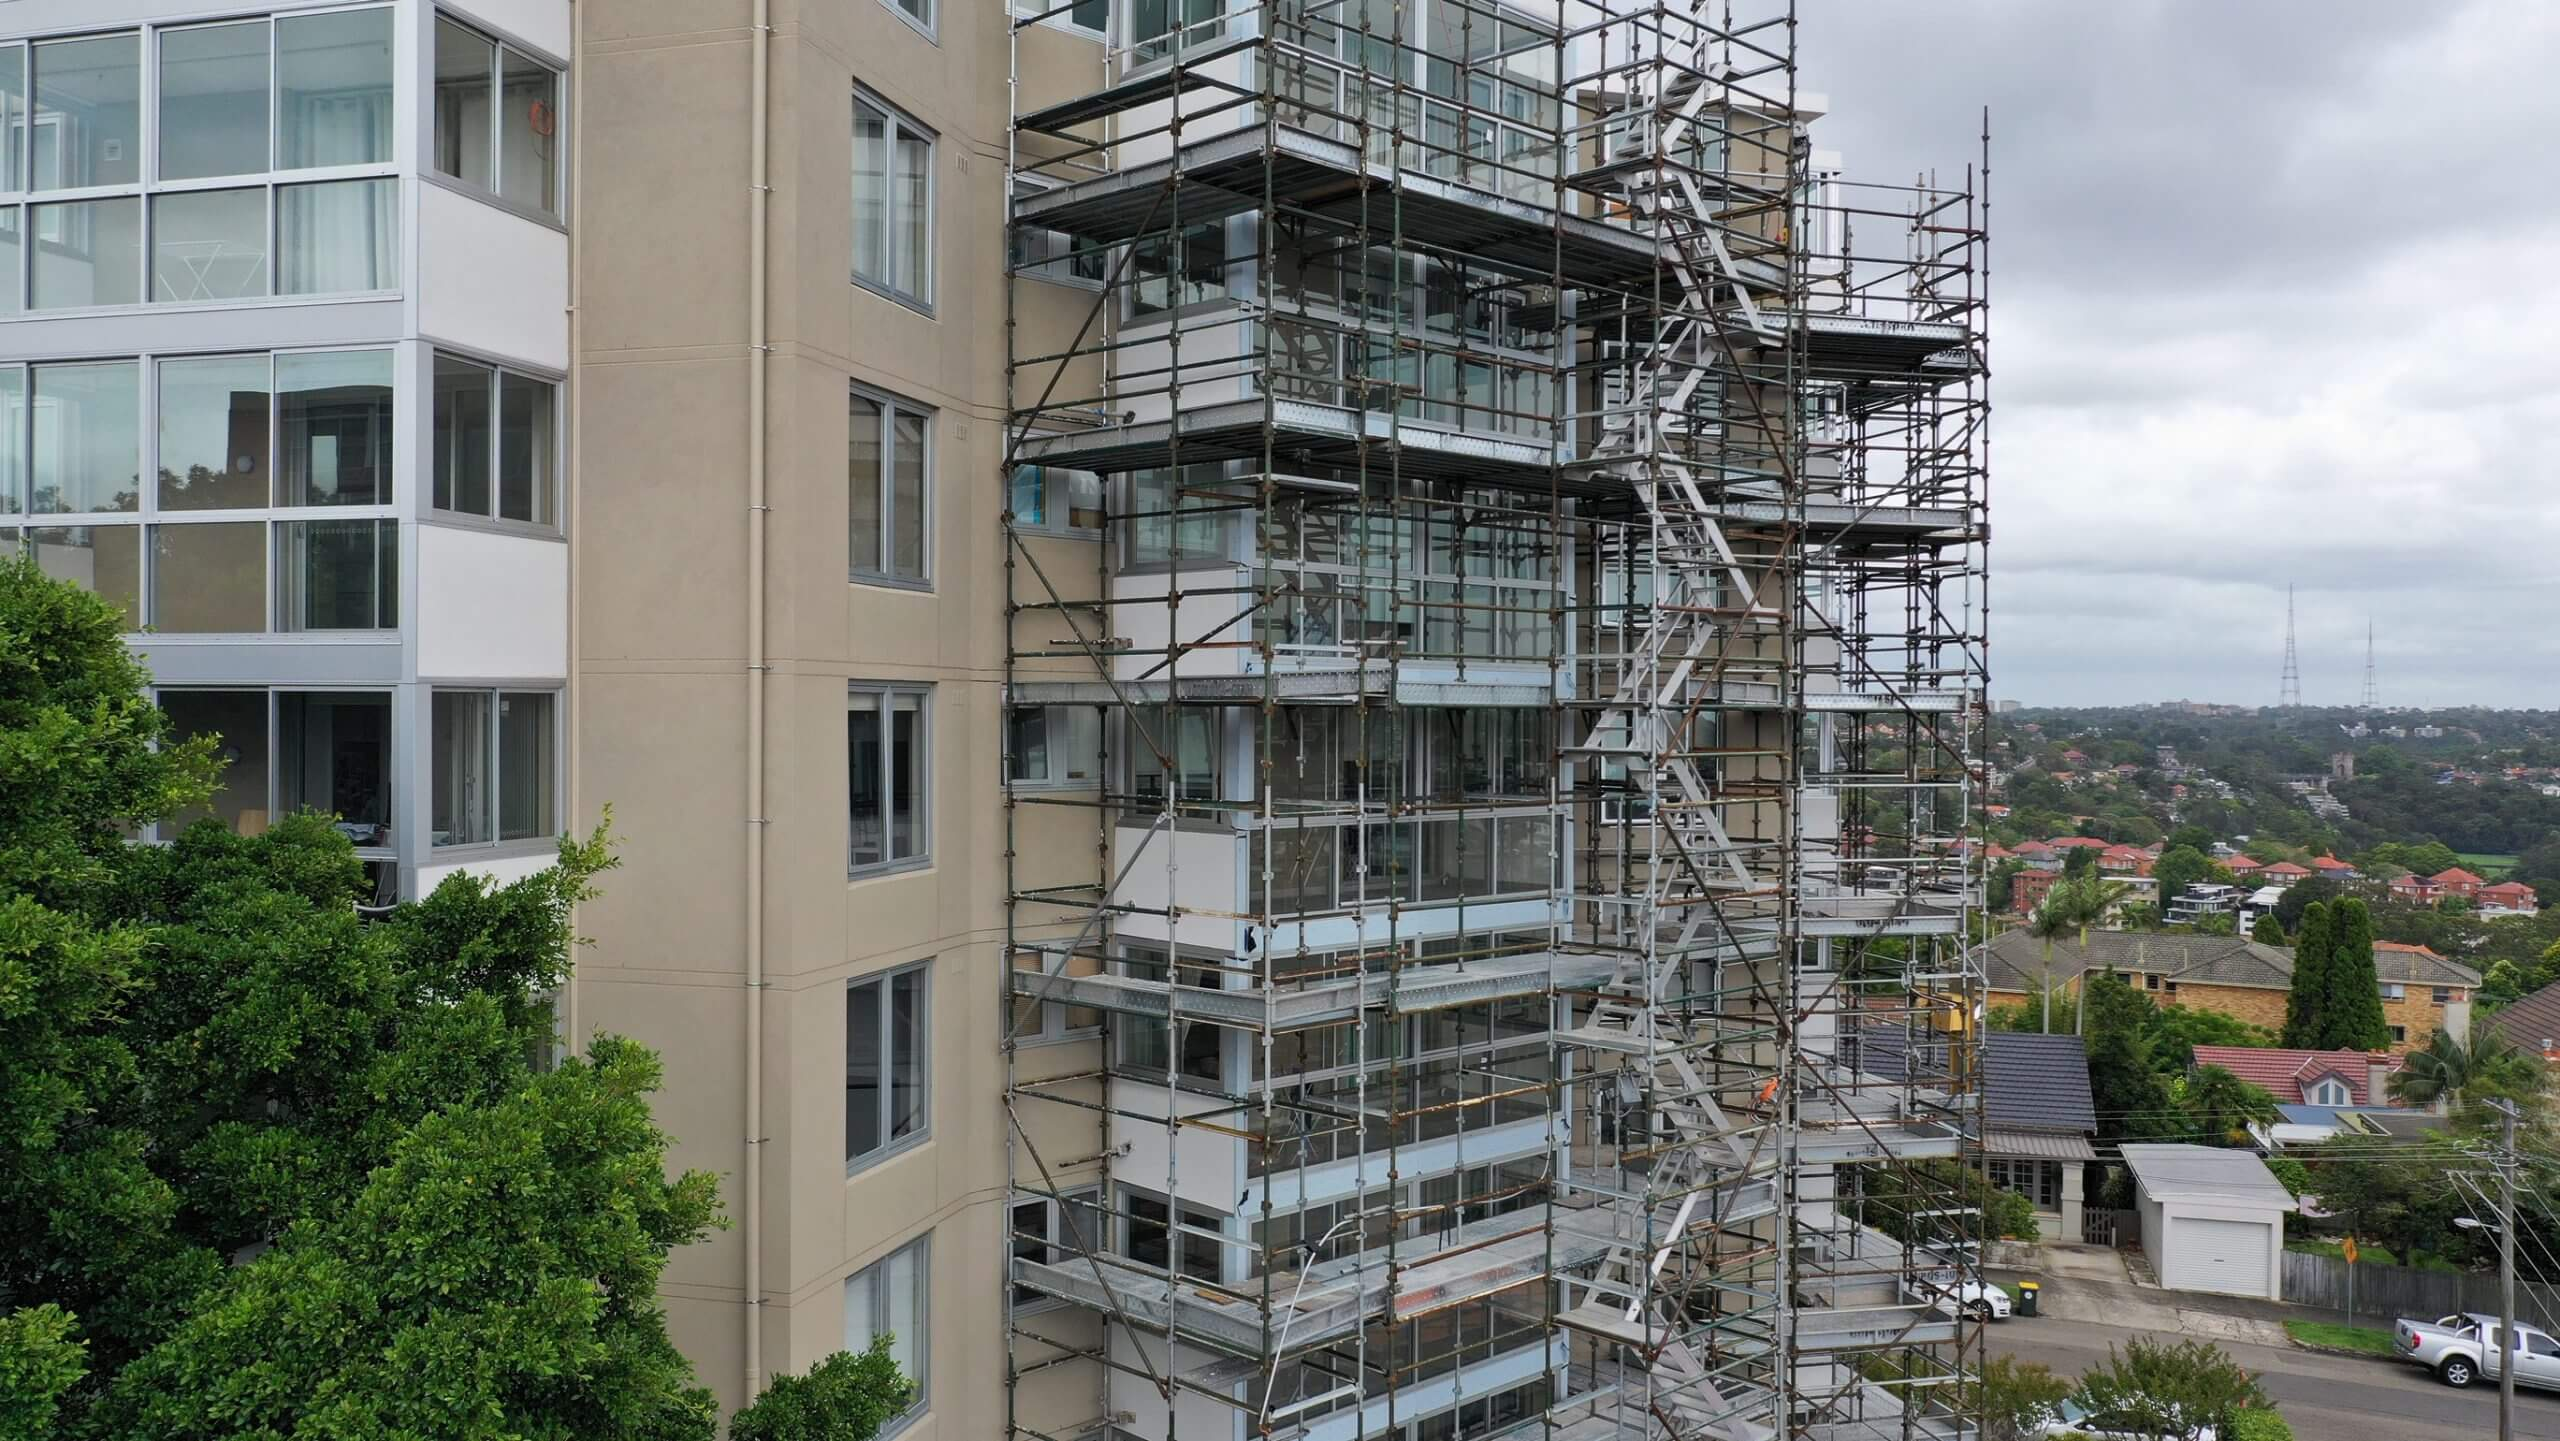 Window Replacement - Façade Upgrade - Remedial Building Services